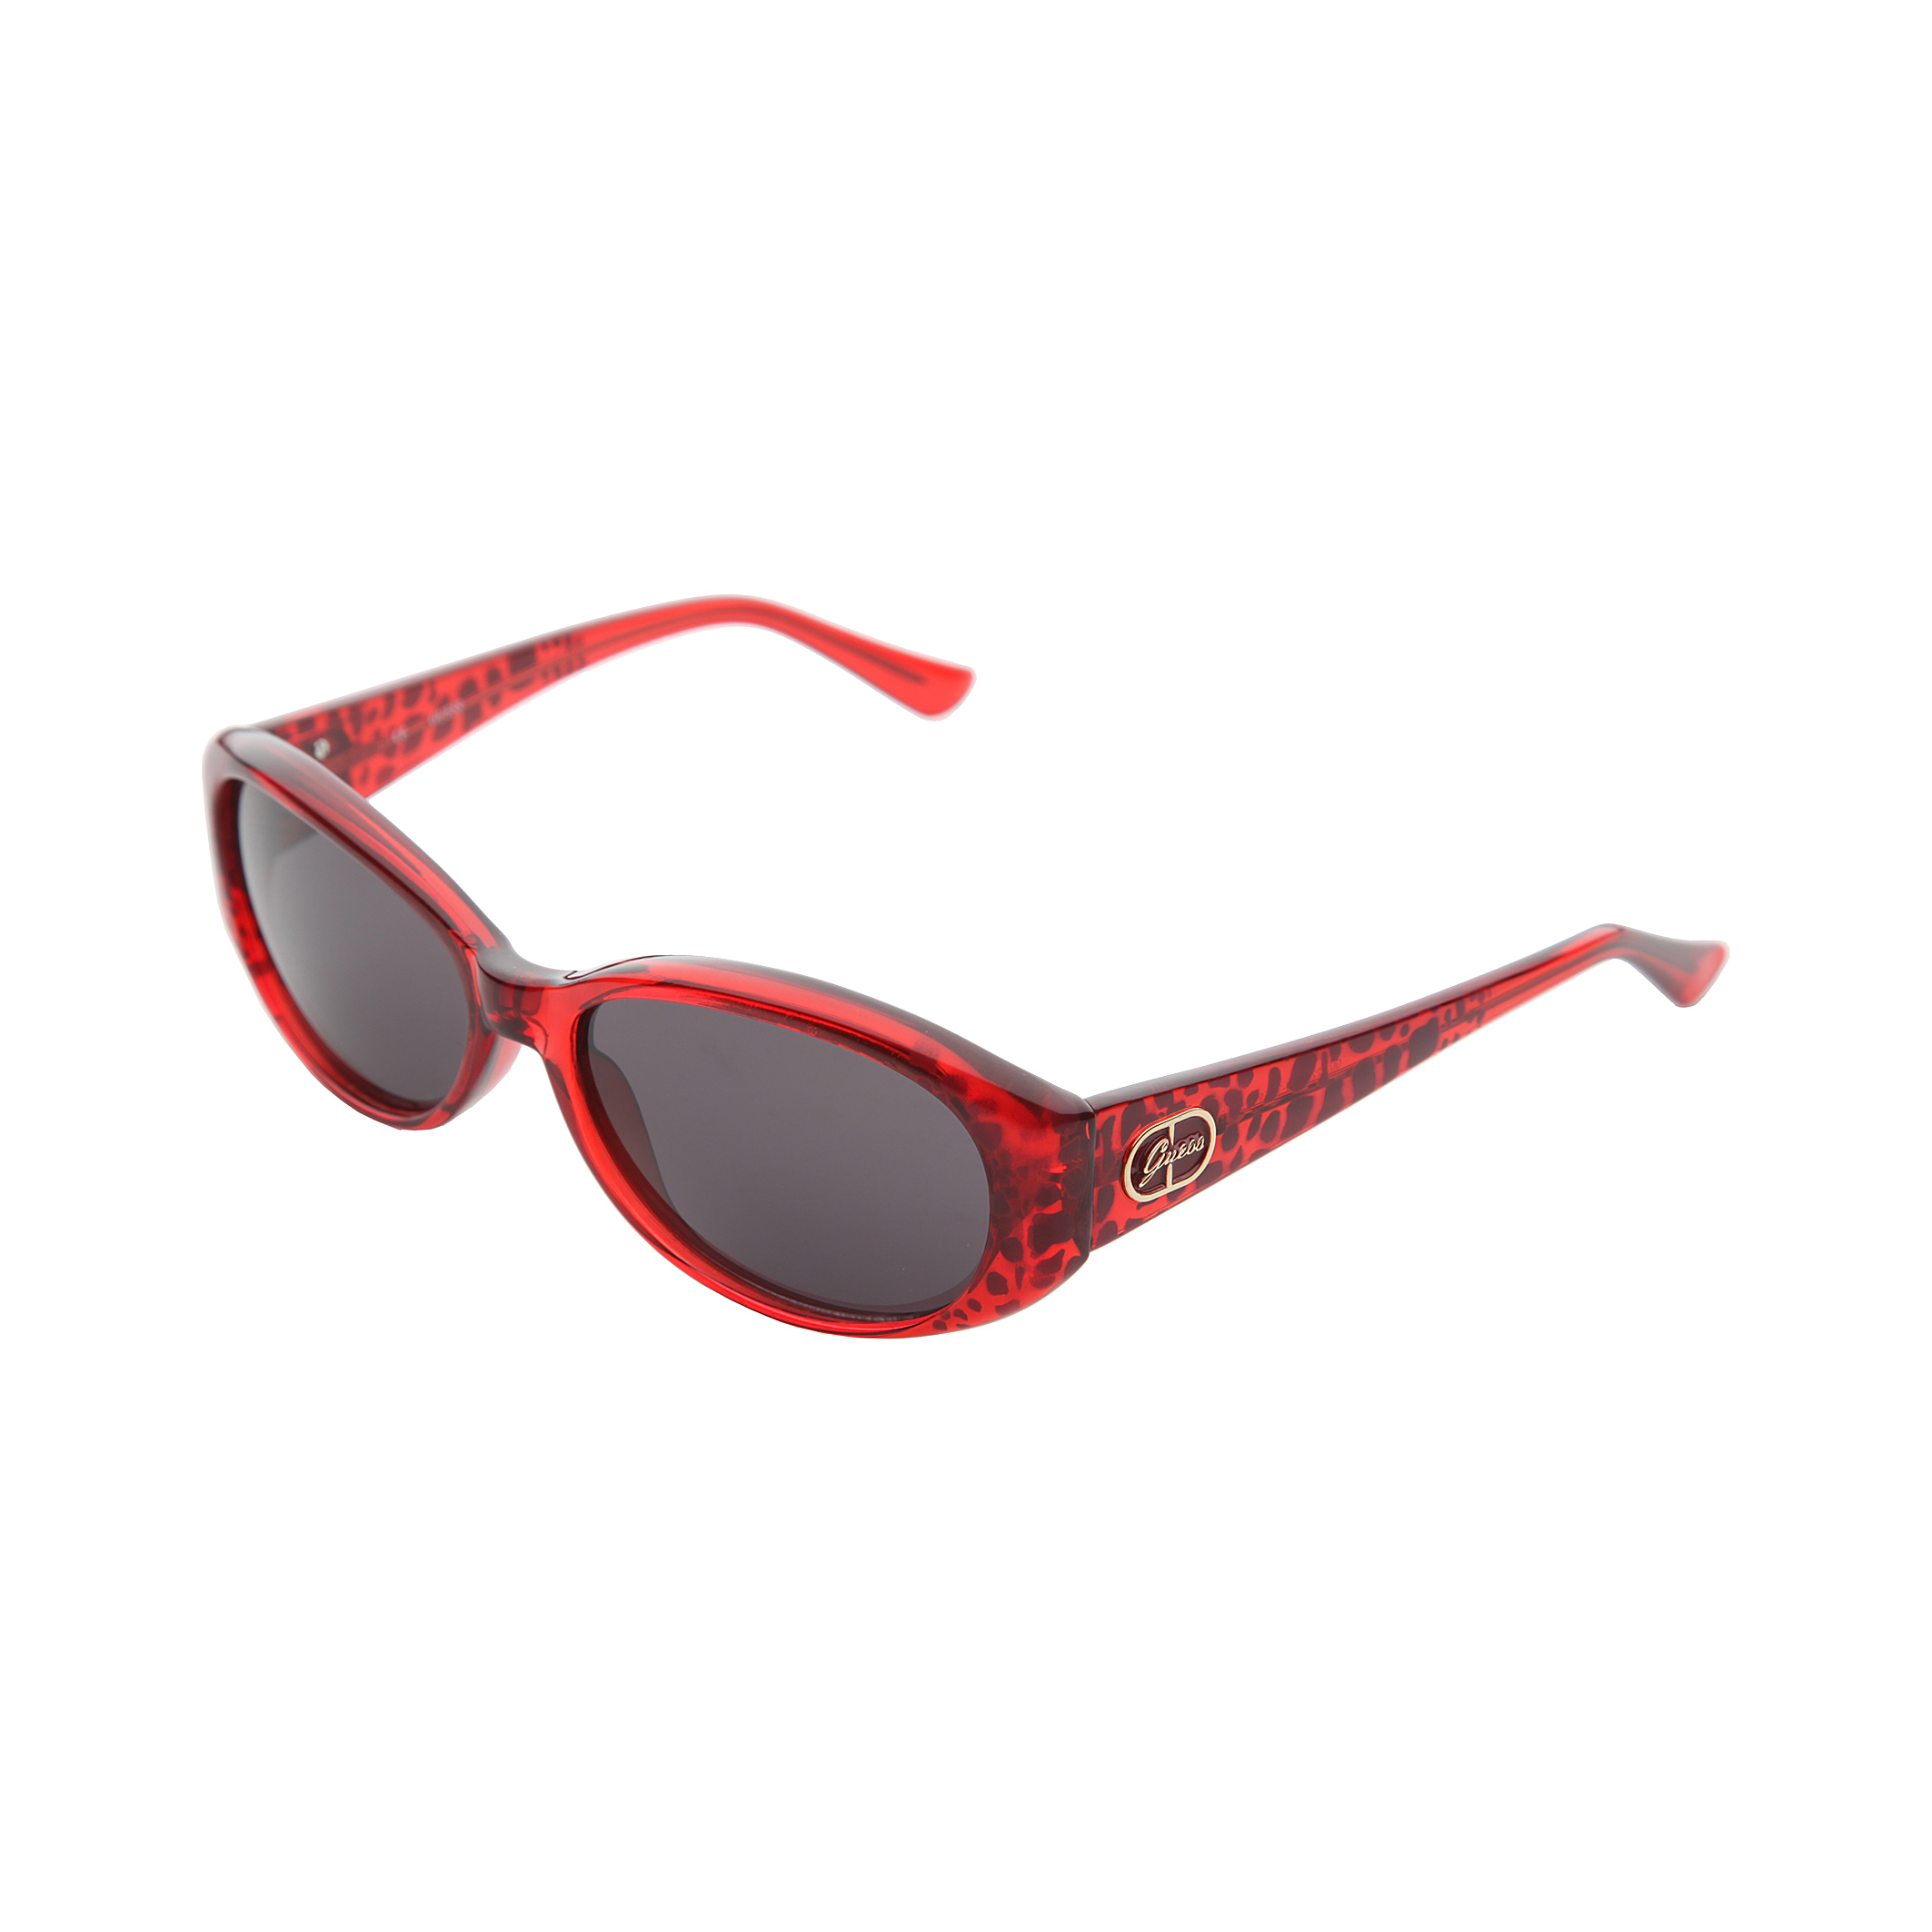 Guess Womens/Ladies GU7220 Sunglasses With Leopard Print ...